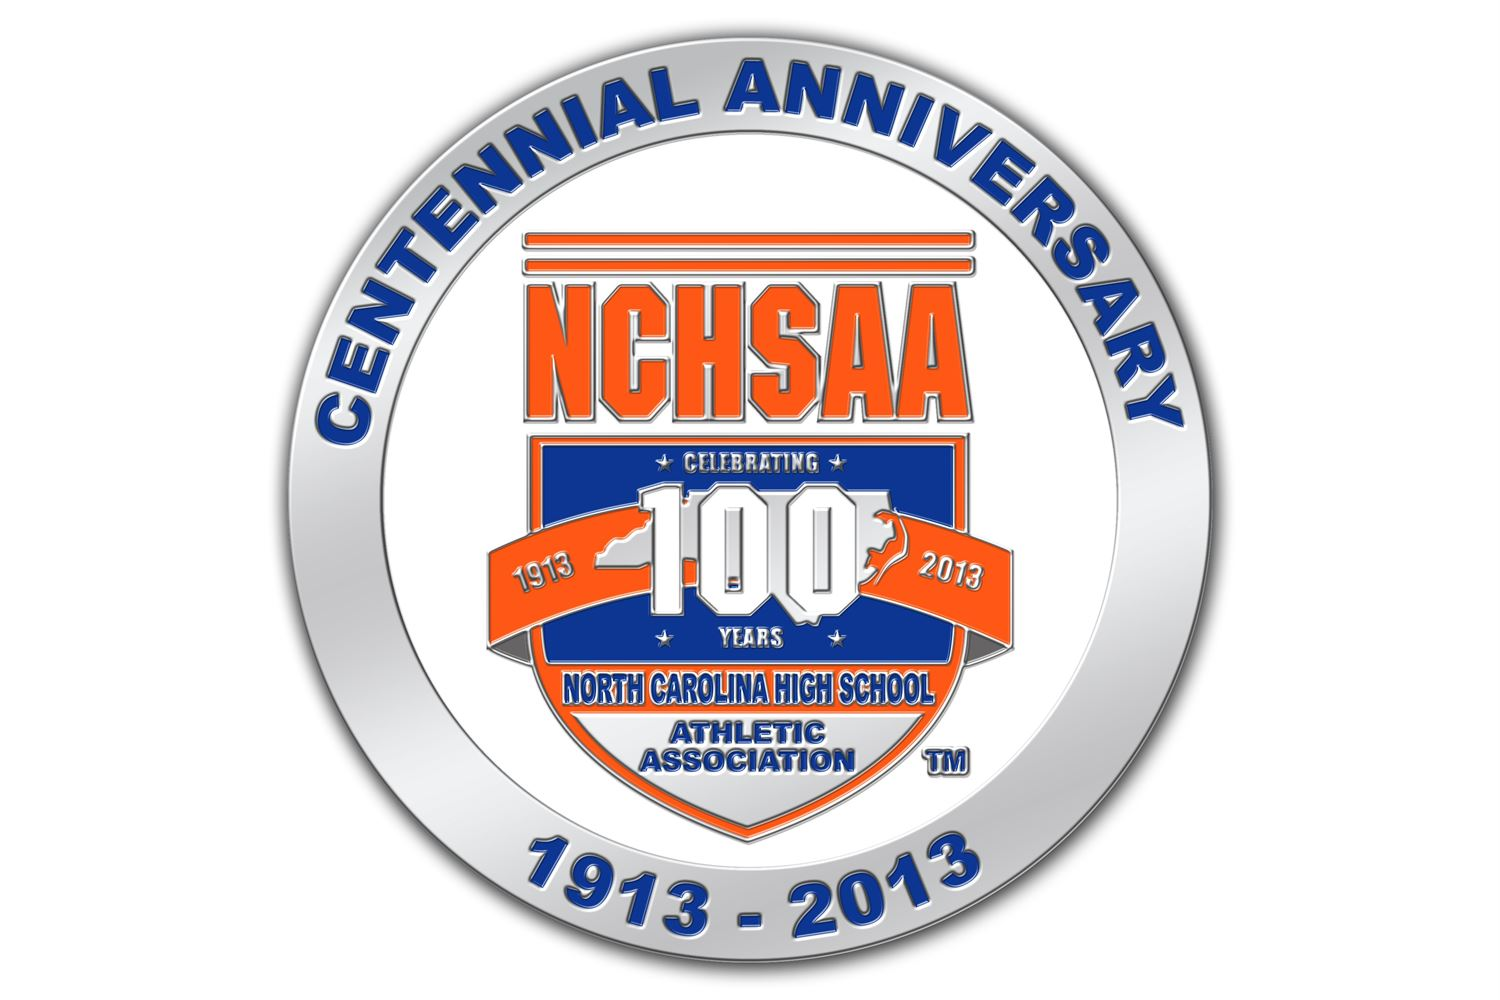 North Carolina High School Athletic Association - NCHSAA FOOTBALL WEST